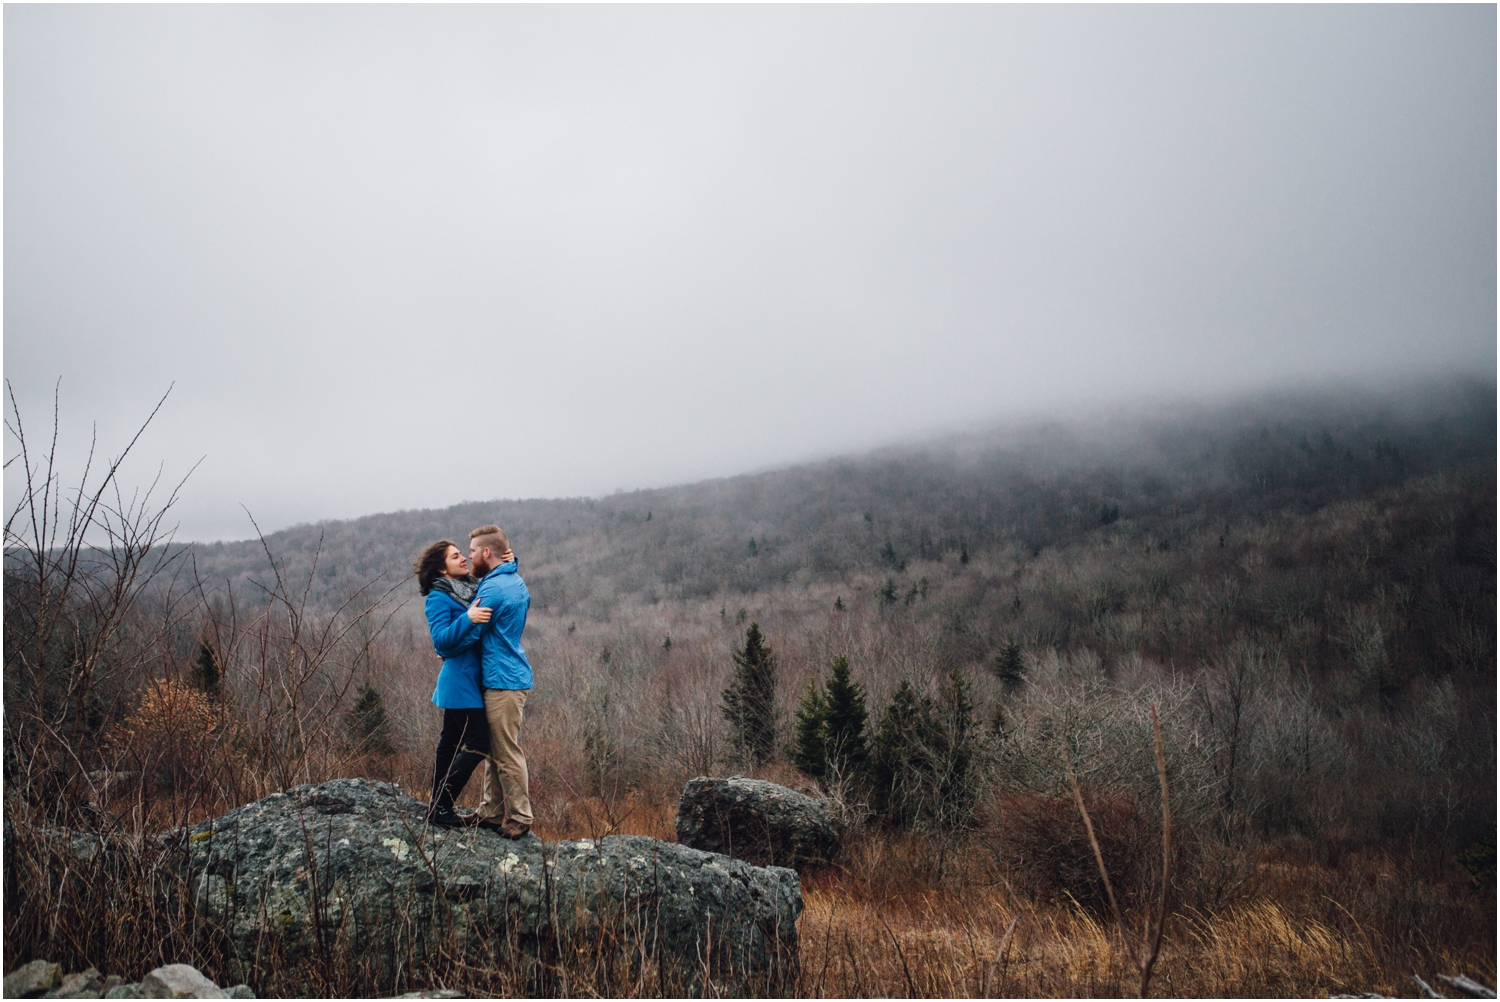 katy-sergent-photography-grayson-highlands-engagement-session-mouth-of-wilson-virginia-damascus-appalachian-trail-tennessee-wedding-elopement_0021.jpg